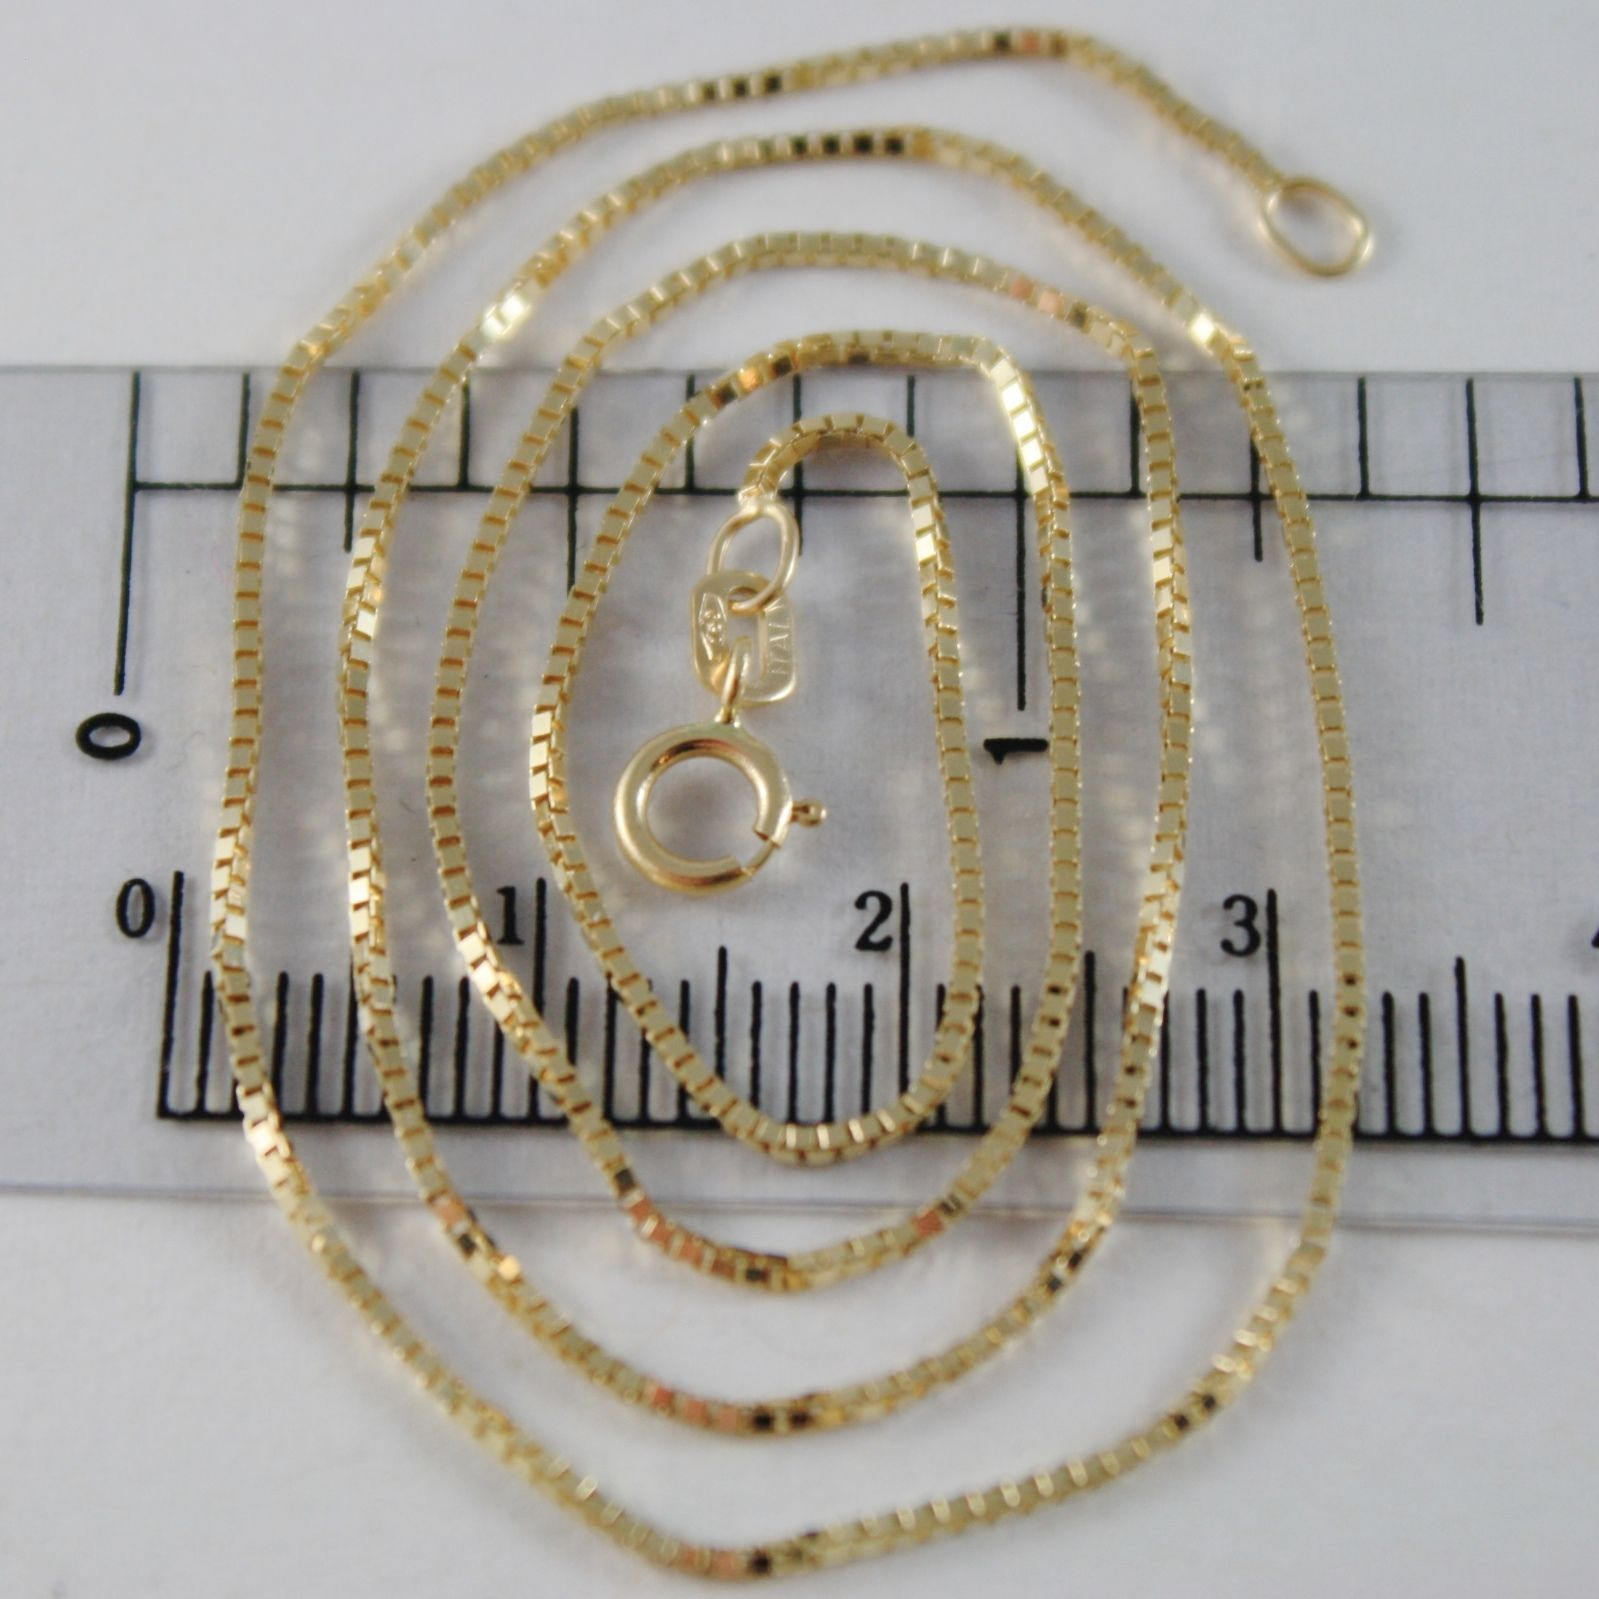 18K YELLOW GOLD CHAIN 1 MM VENETIAN SQUARE MESH 19.68 INCHES, MADE IN ITALY